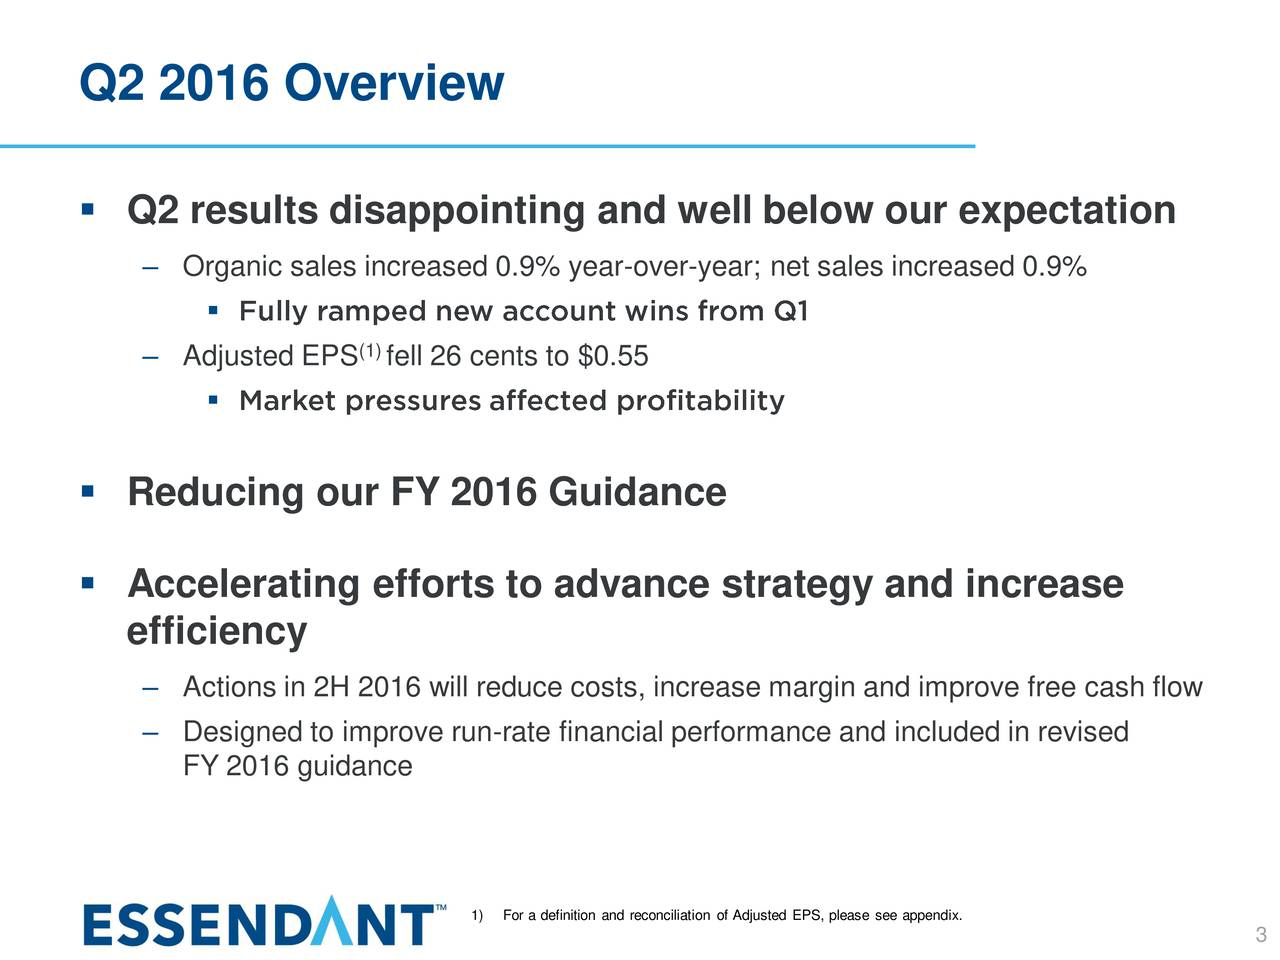 Q2 results disappointing and well below our expectation Organic sales increased 0.9% year-over-year; net sales increased 0.9% Adjusted EPS fell 26 cents to $0.55 Reducing our FY 2016 Guidance Accelerating efforts to advance strategy and increase efficiency Actions in 2H 2016 will reduce costs, increase margin and improve free cash flow Designed to improve run-rate financial performance and included in revised FY 2016 guidance 1)For a definition and reconciliation of Adjusted EPS, pl3ase see appendix.